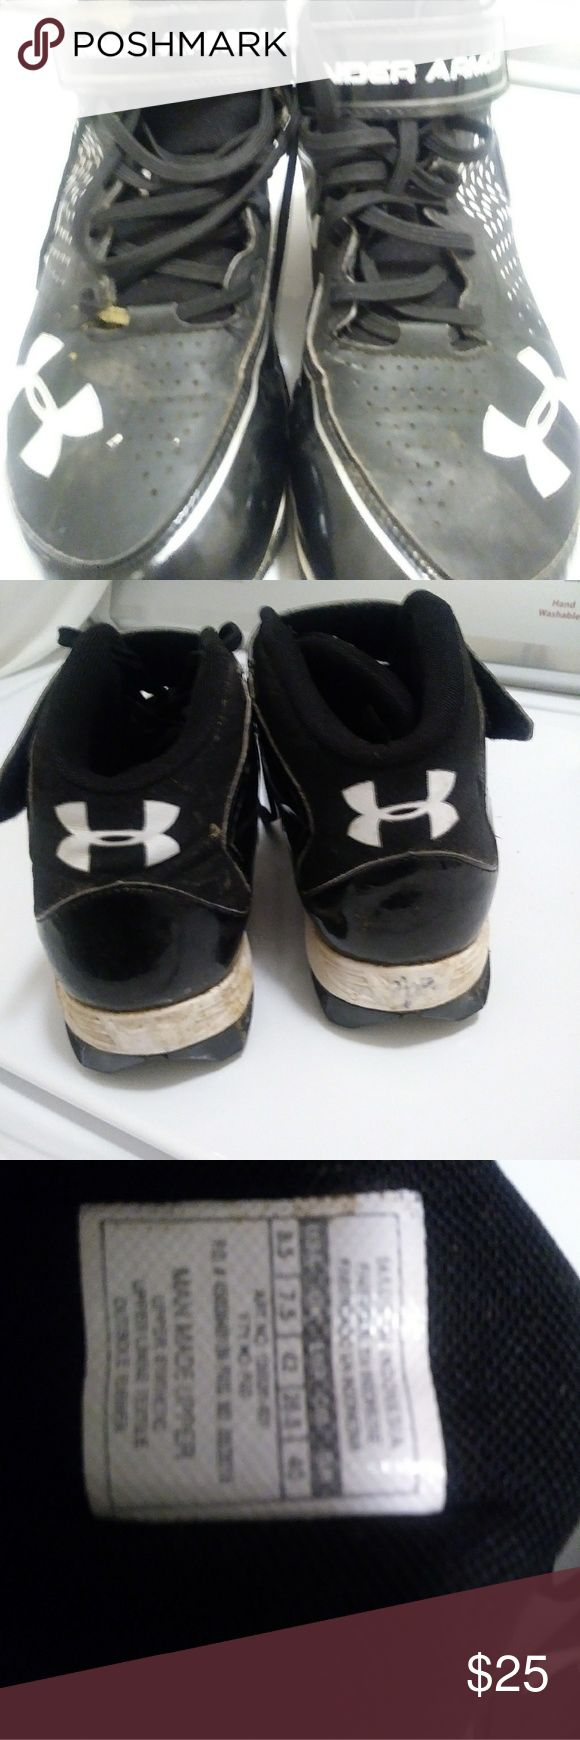 Under Armour Football Shoe as 8.5 $25 +gift! Under Armour Football Shoe as 8.5 $25 pre-owned good no marks or tear + free gift any other item in this …